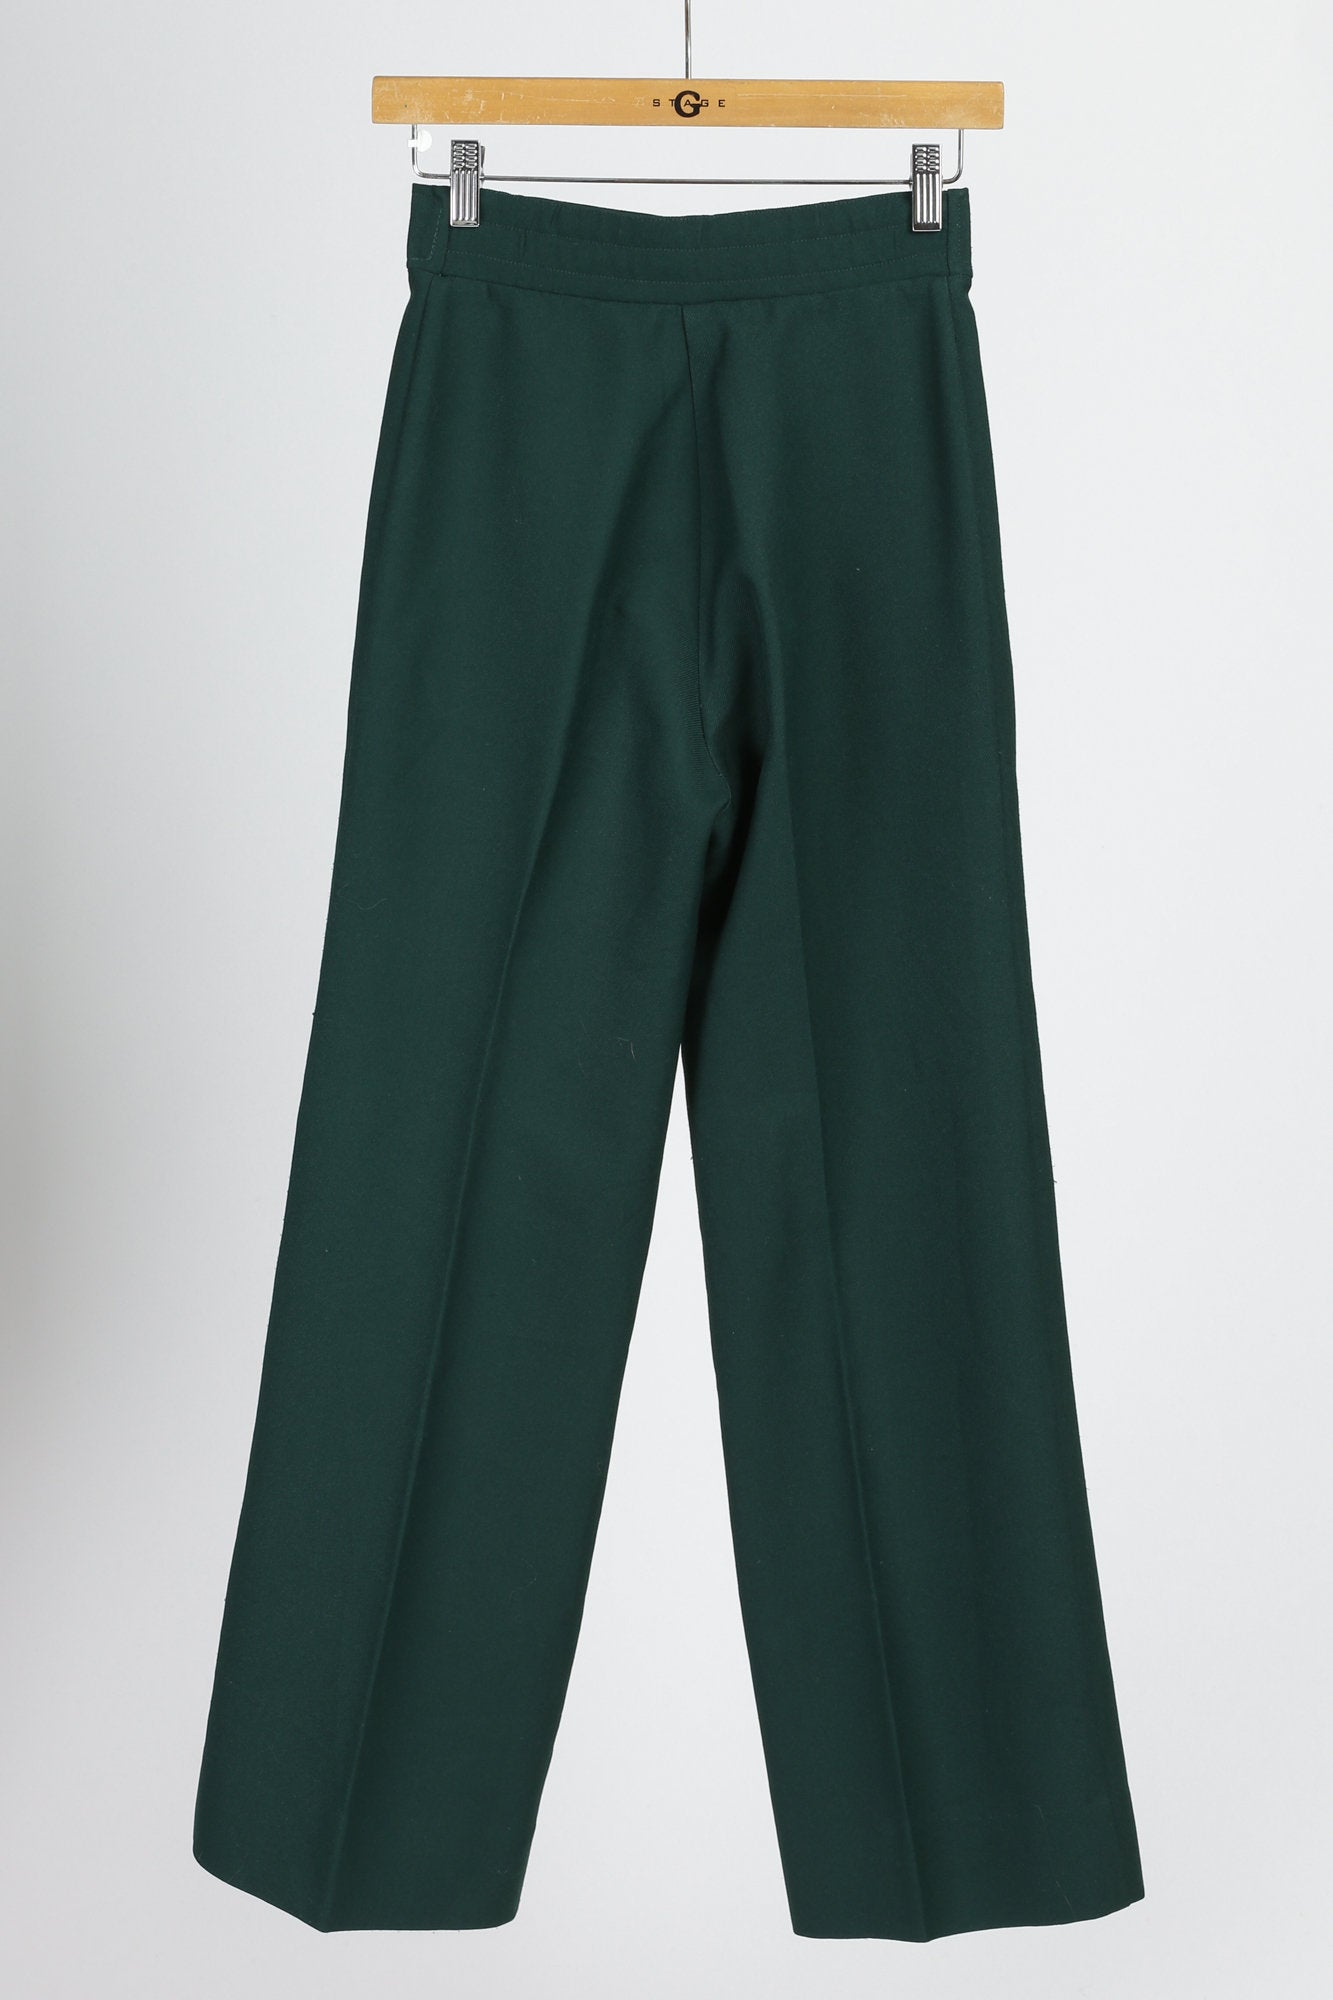 70s Forest Green High Waist Pants - Extra Small